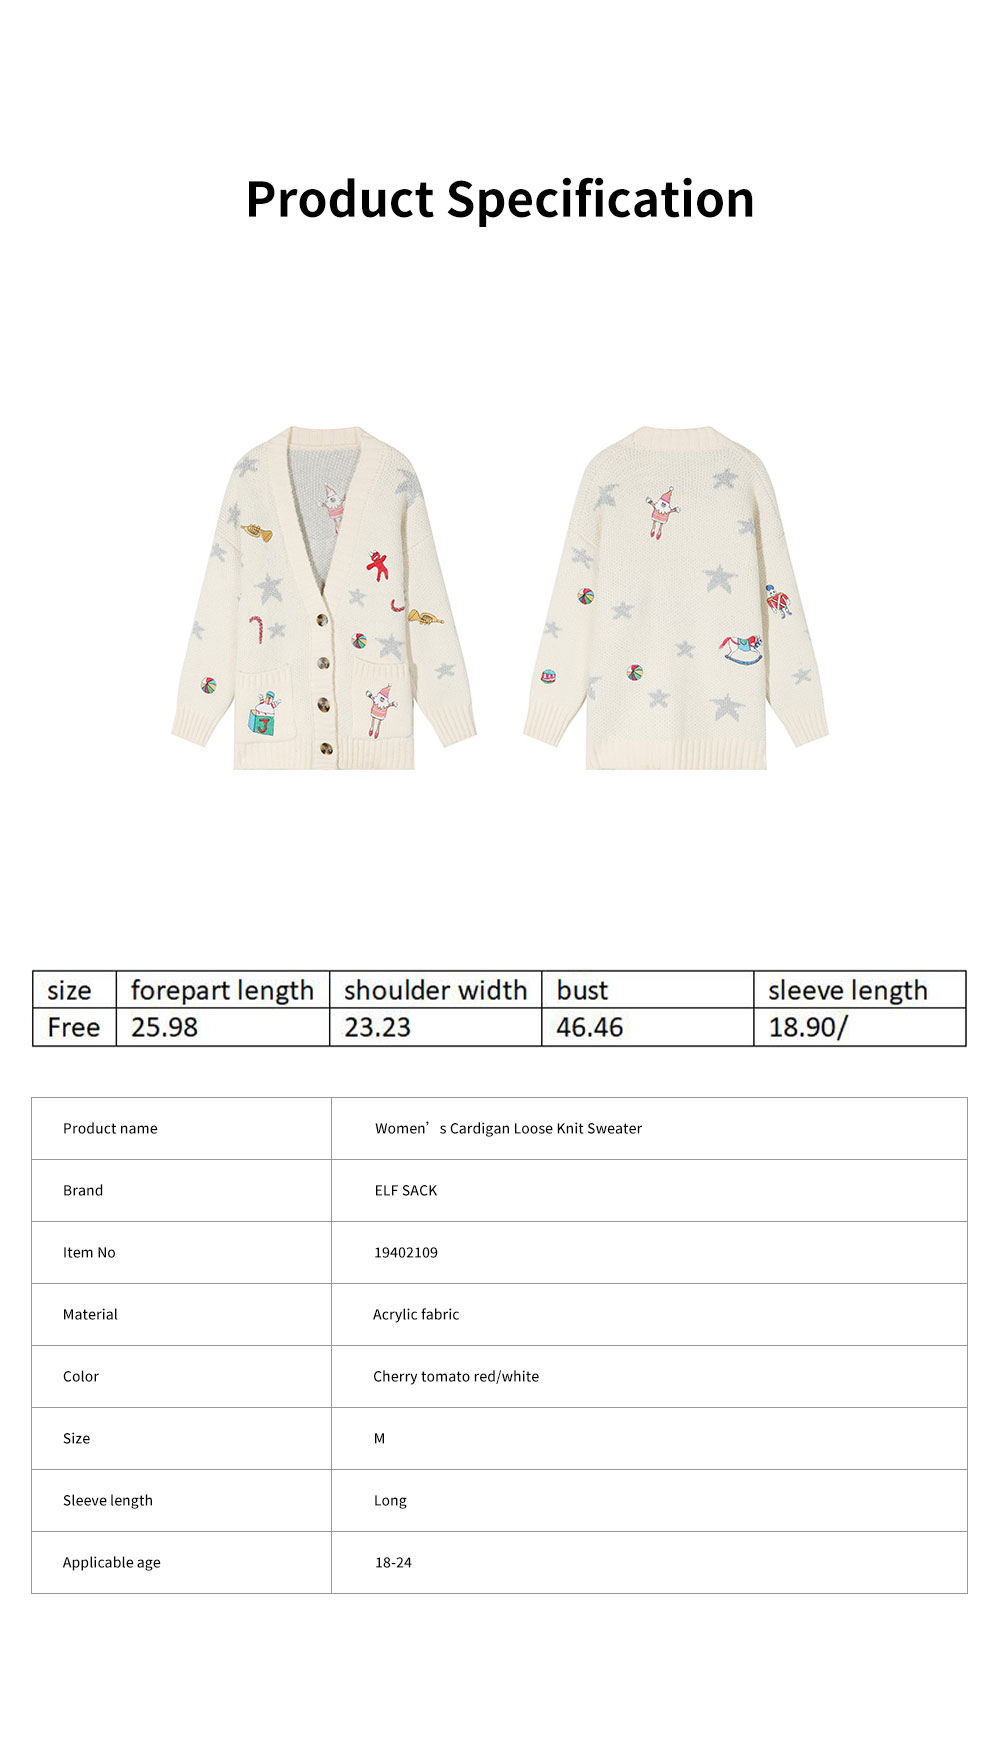 ELFSACK Women's Loose Knit Sweater Fashion Embroidery Print Cardigan Coat with Long Sleeves for Autumn and Winter Christmas Gift 6